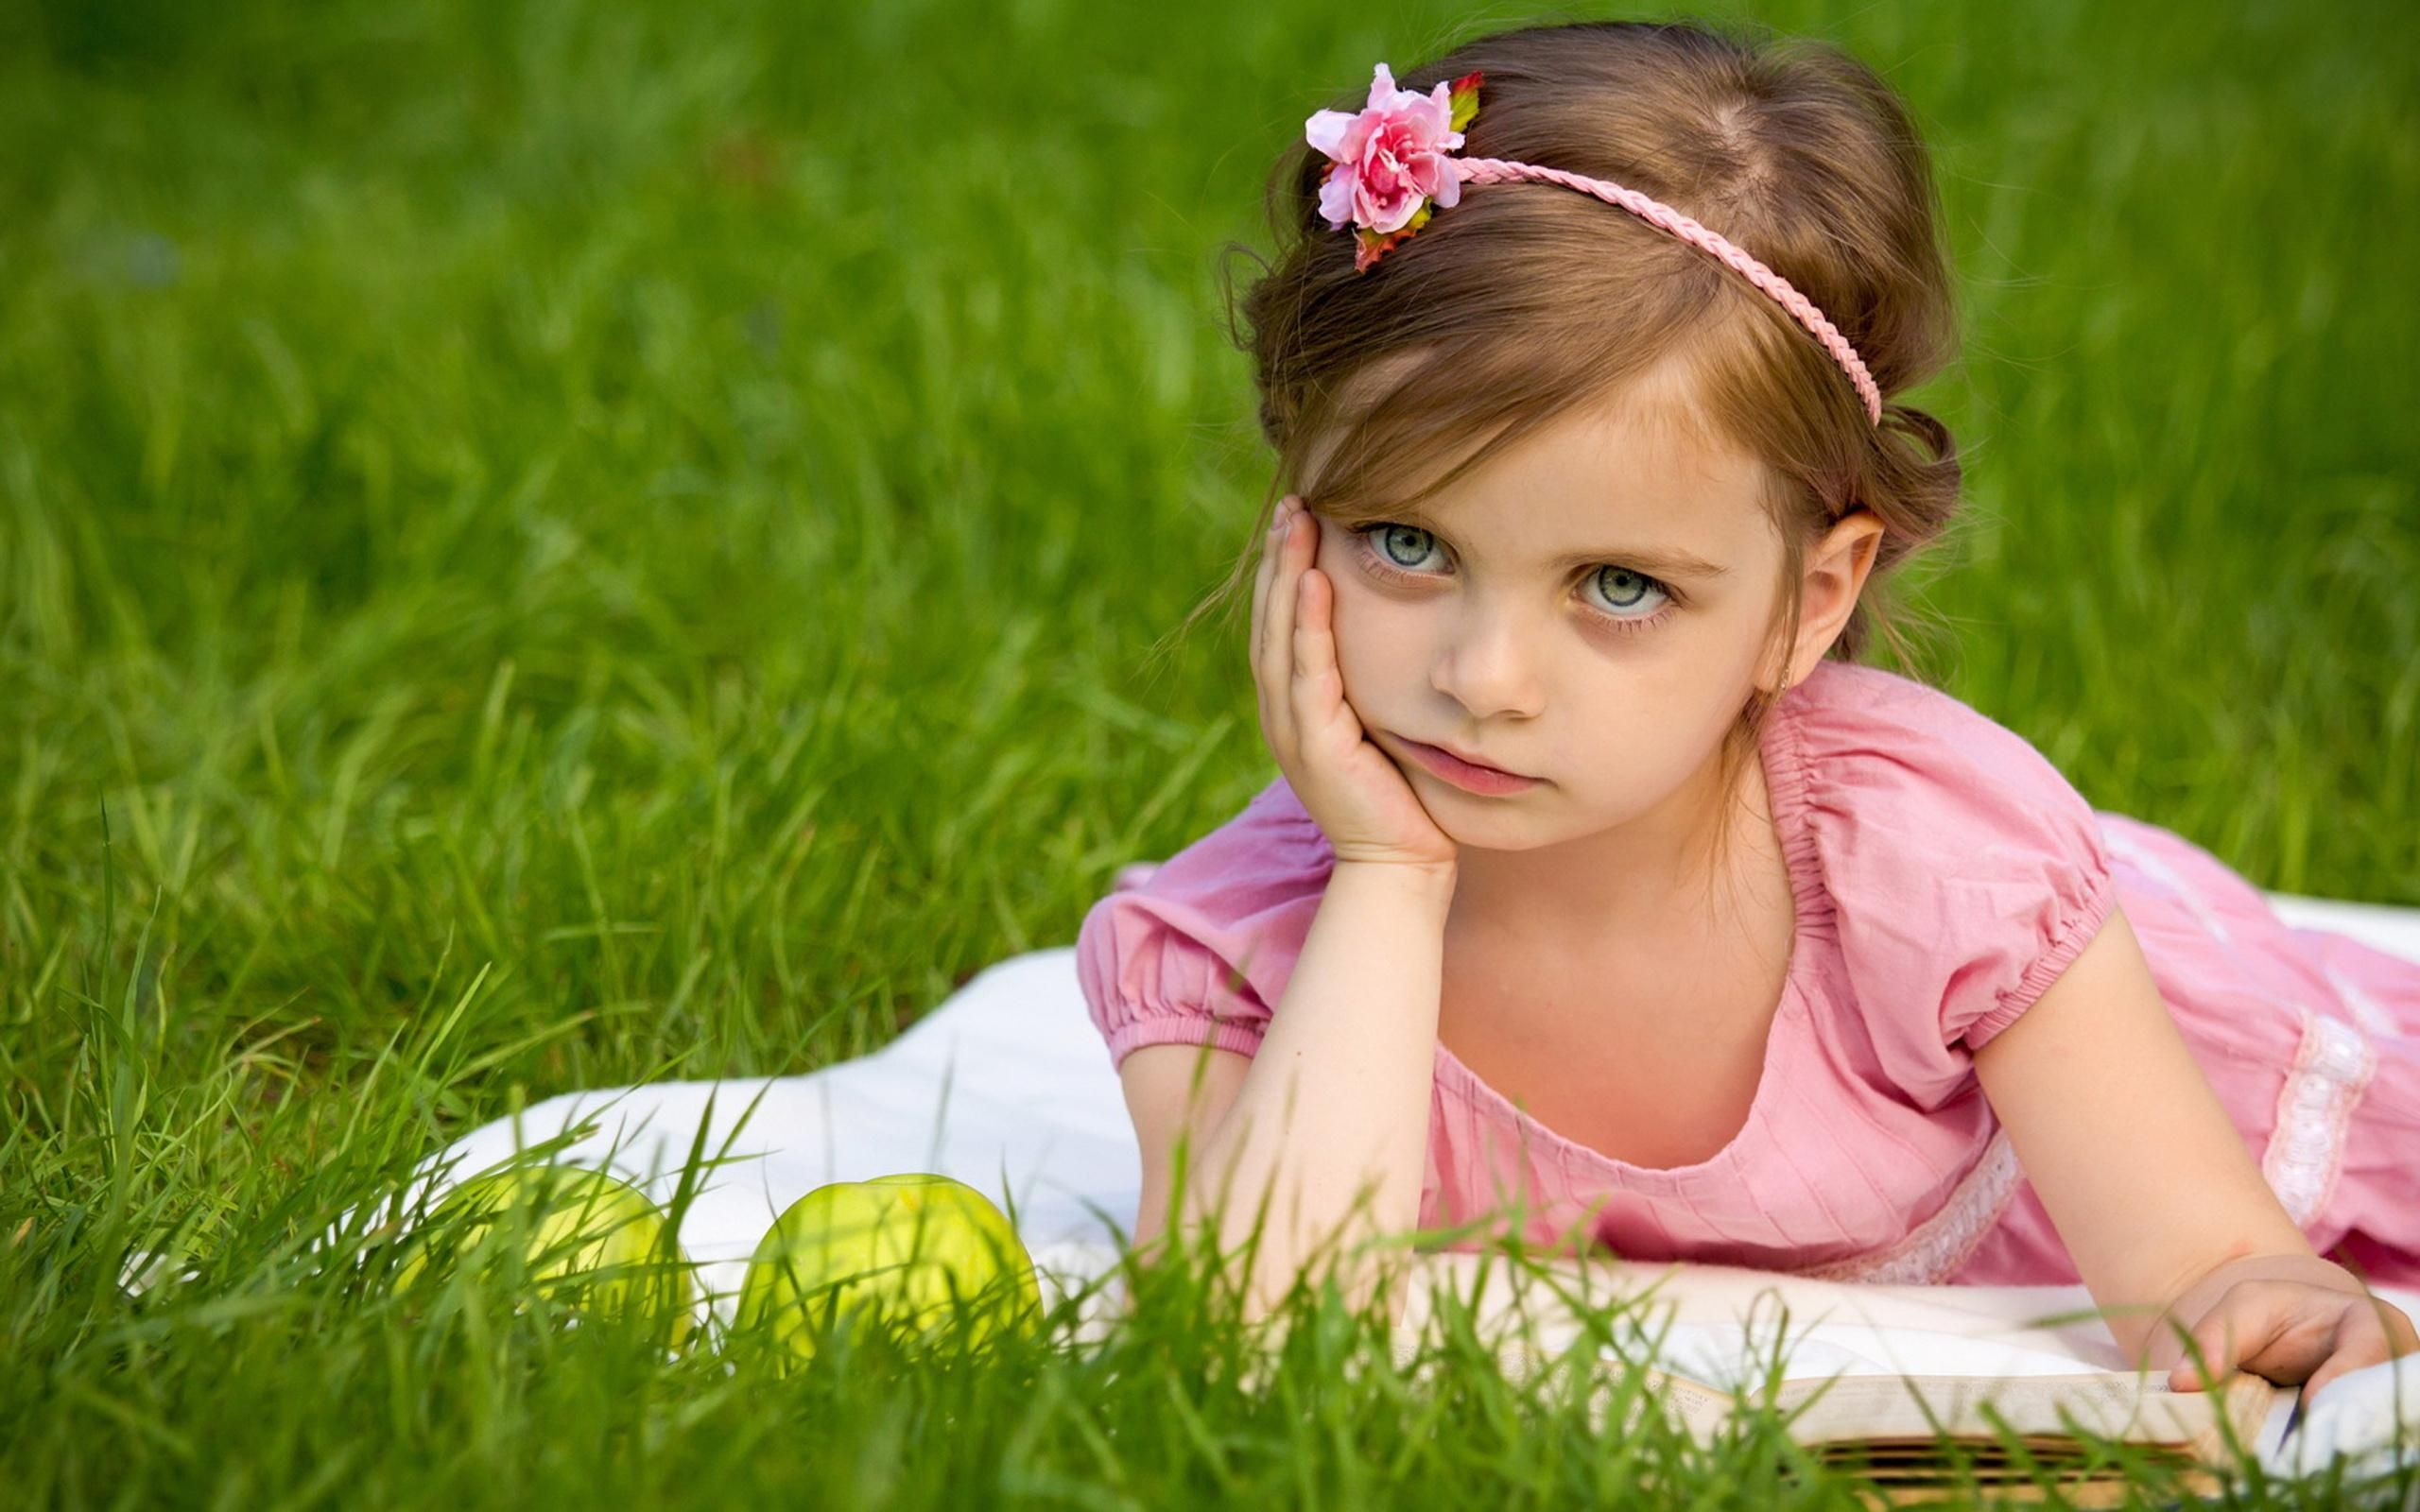 FunMozar – Cute Baby Girl Wallpapers For Mobile